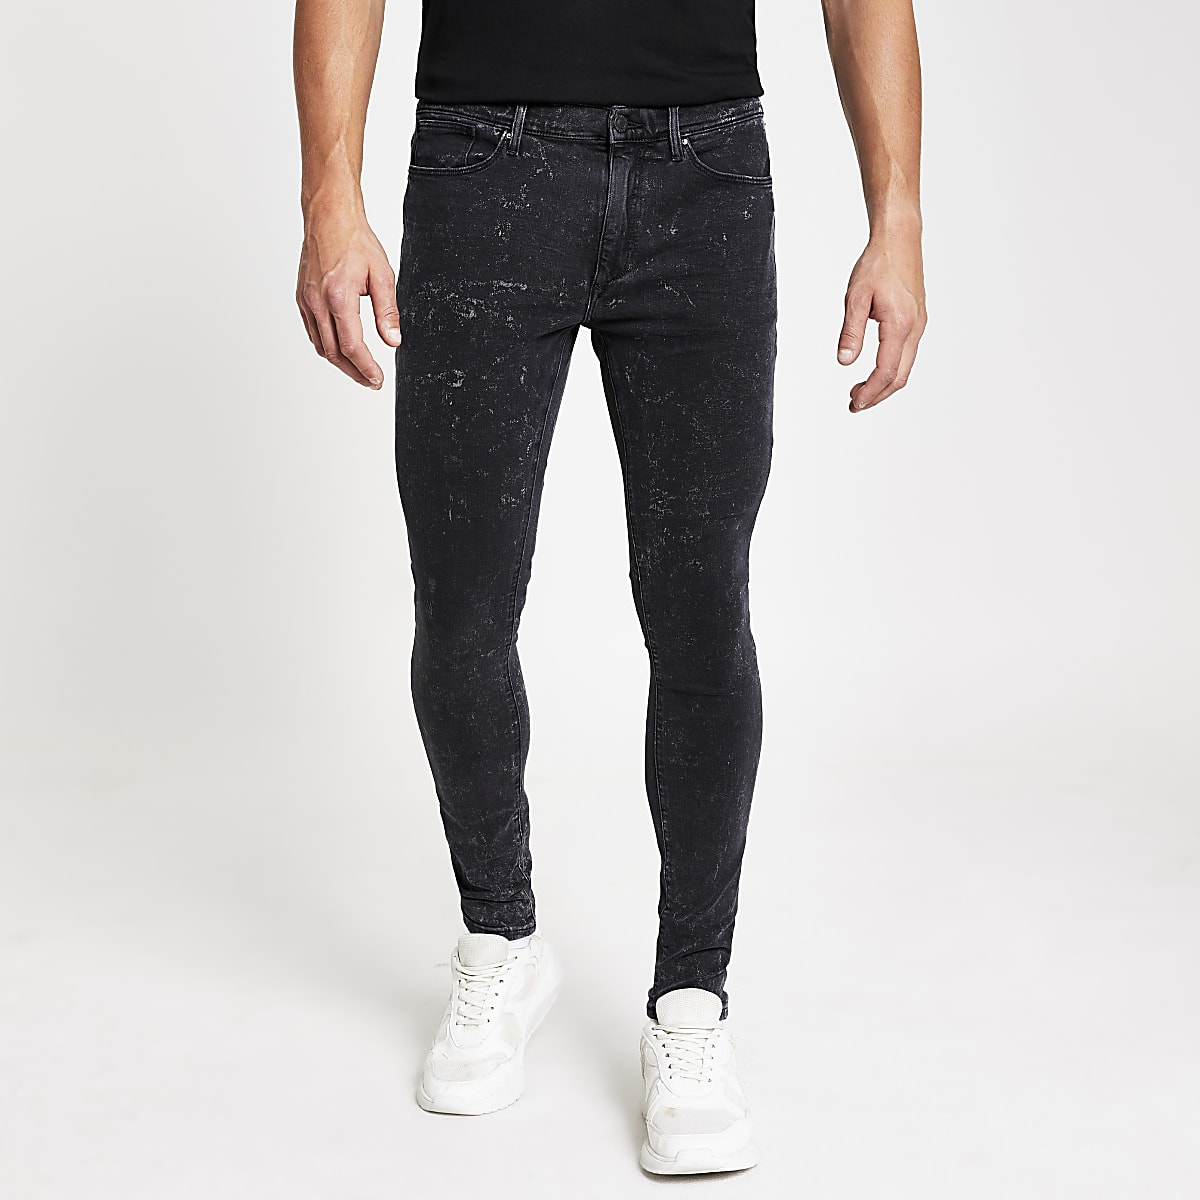 Black acid wash Ollie spray on jeans